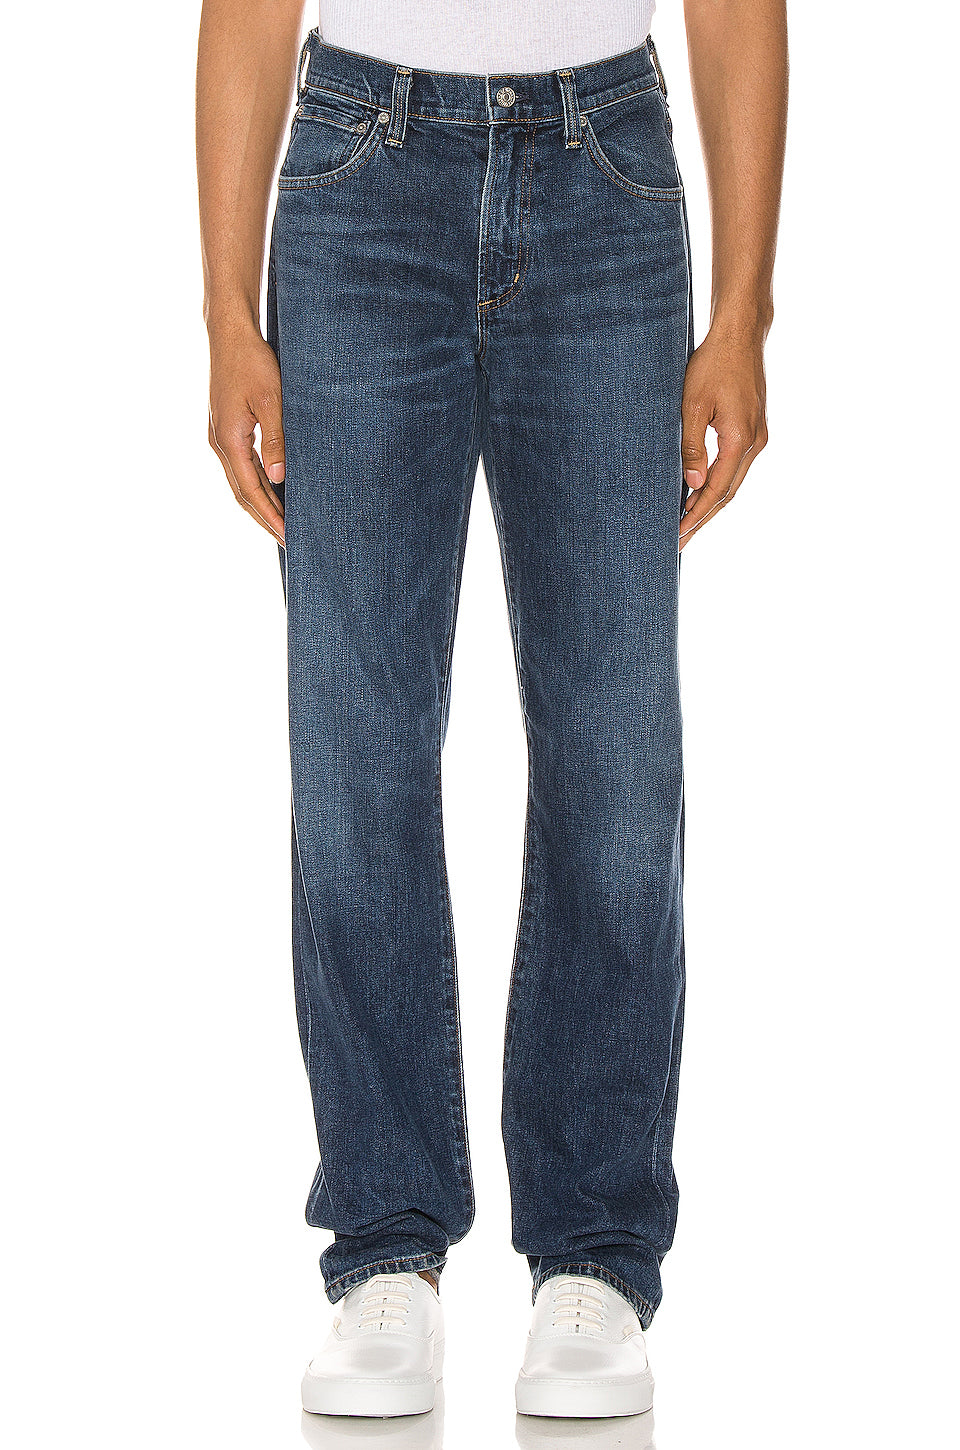 Citizens of Humanity Sid Straight Leg Jeans in Aurora 604D-796